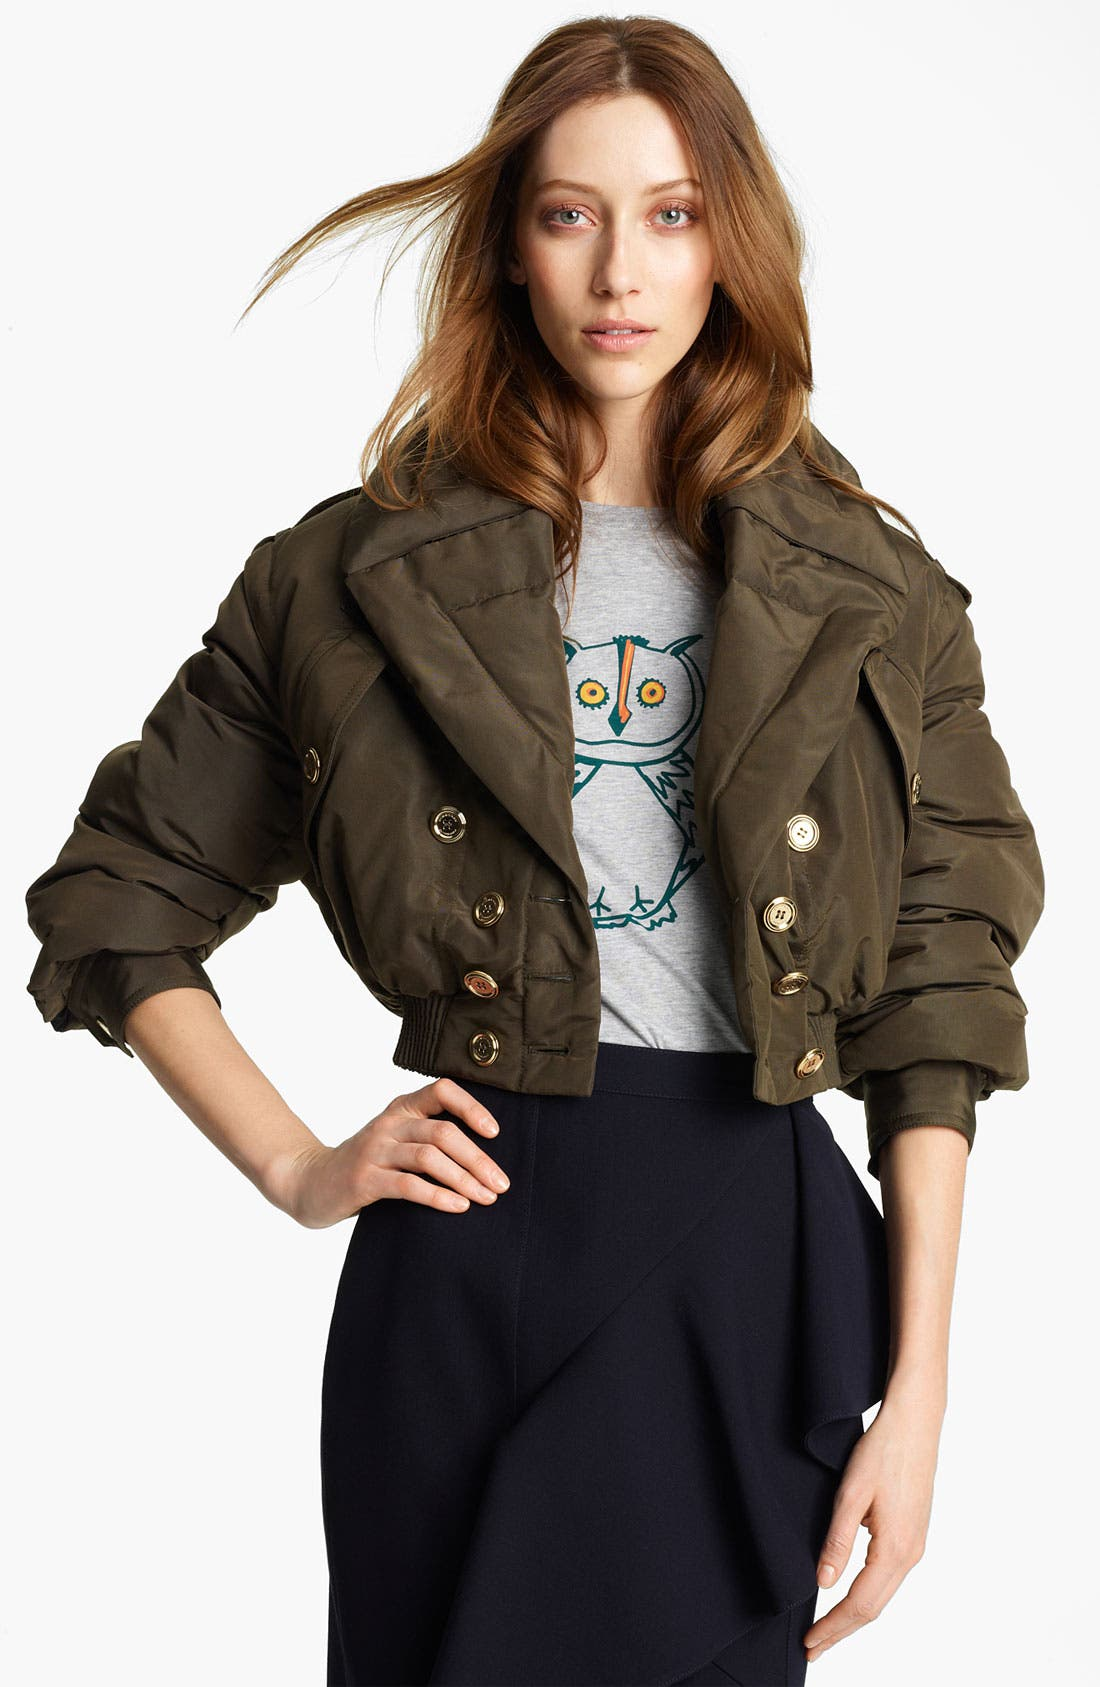 Mulberry Silk Crop Puffer Jacket,                             Main thumbnail 1, color,                             305